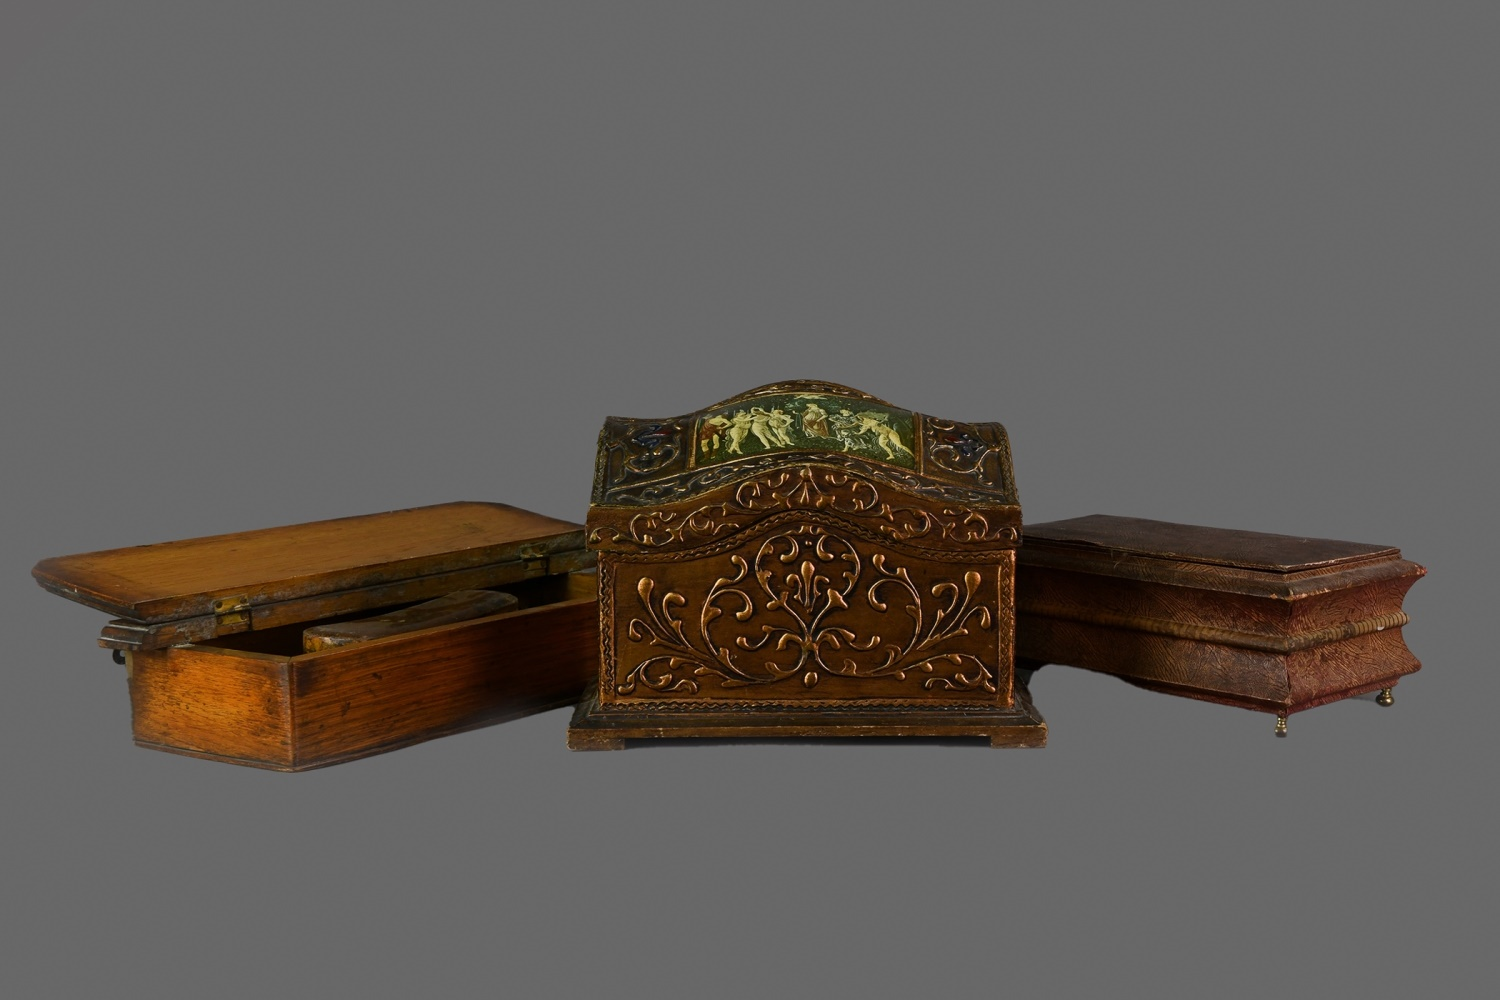 A BRONZED HARDWOOD LETTER BOX, ALONG WITH ANOTHER AND A JEWELLERY CASKET